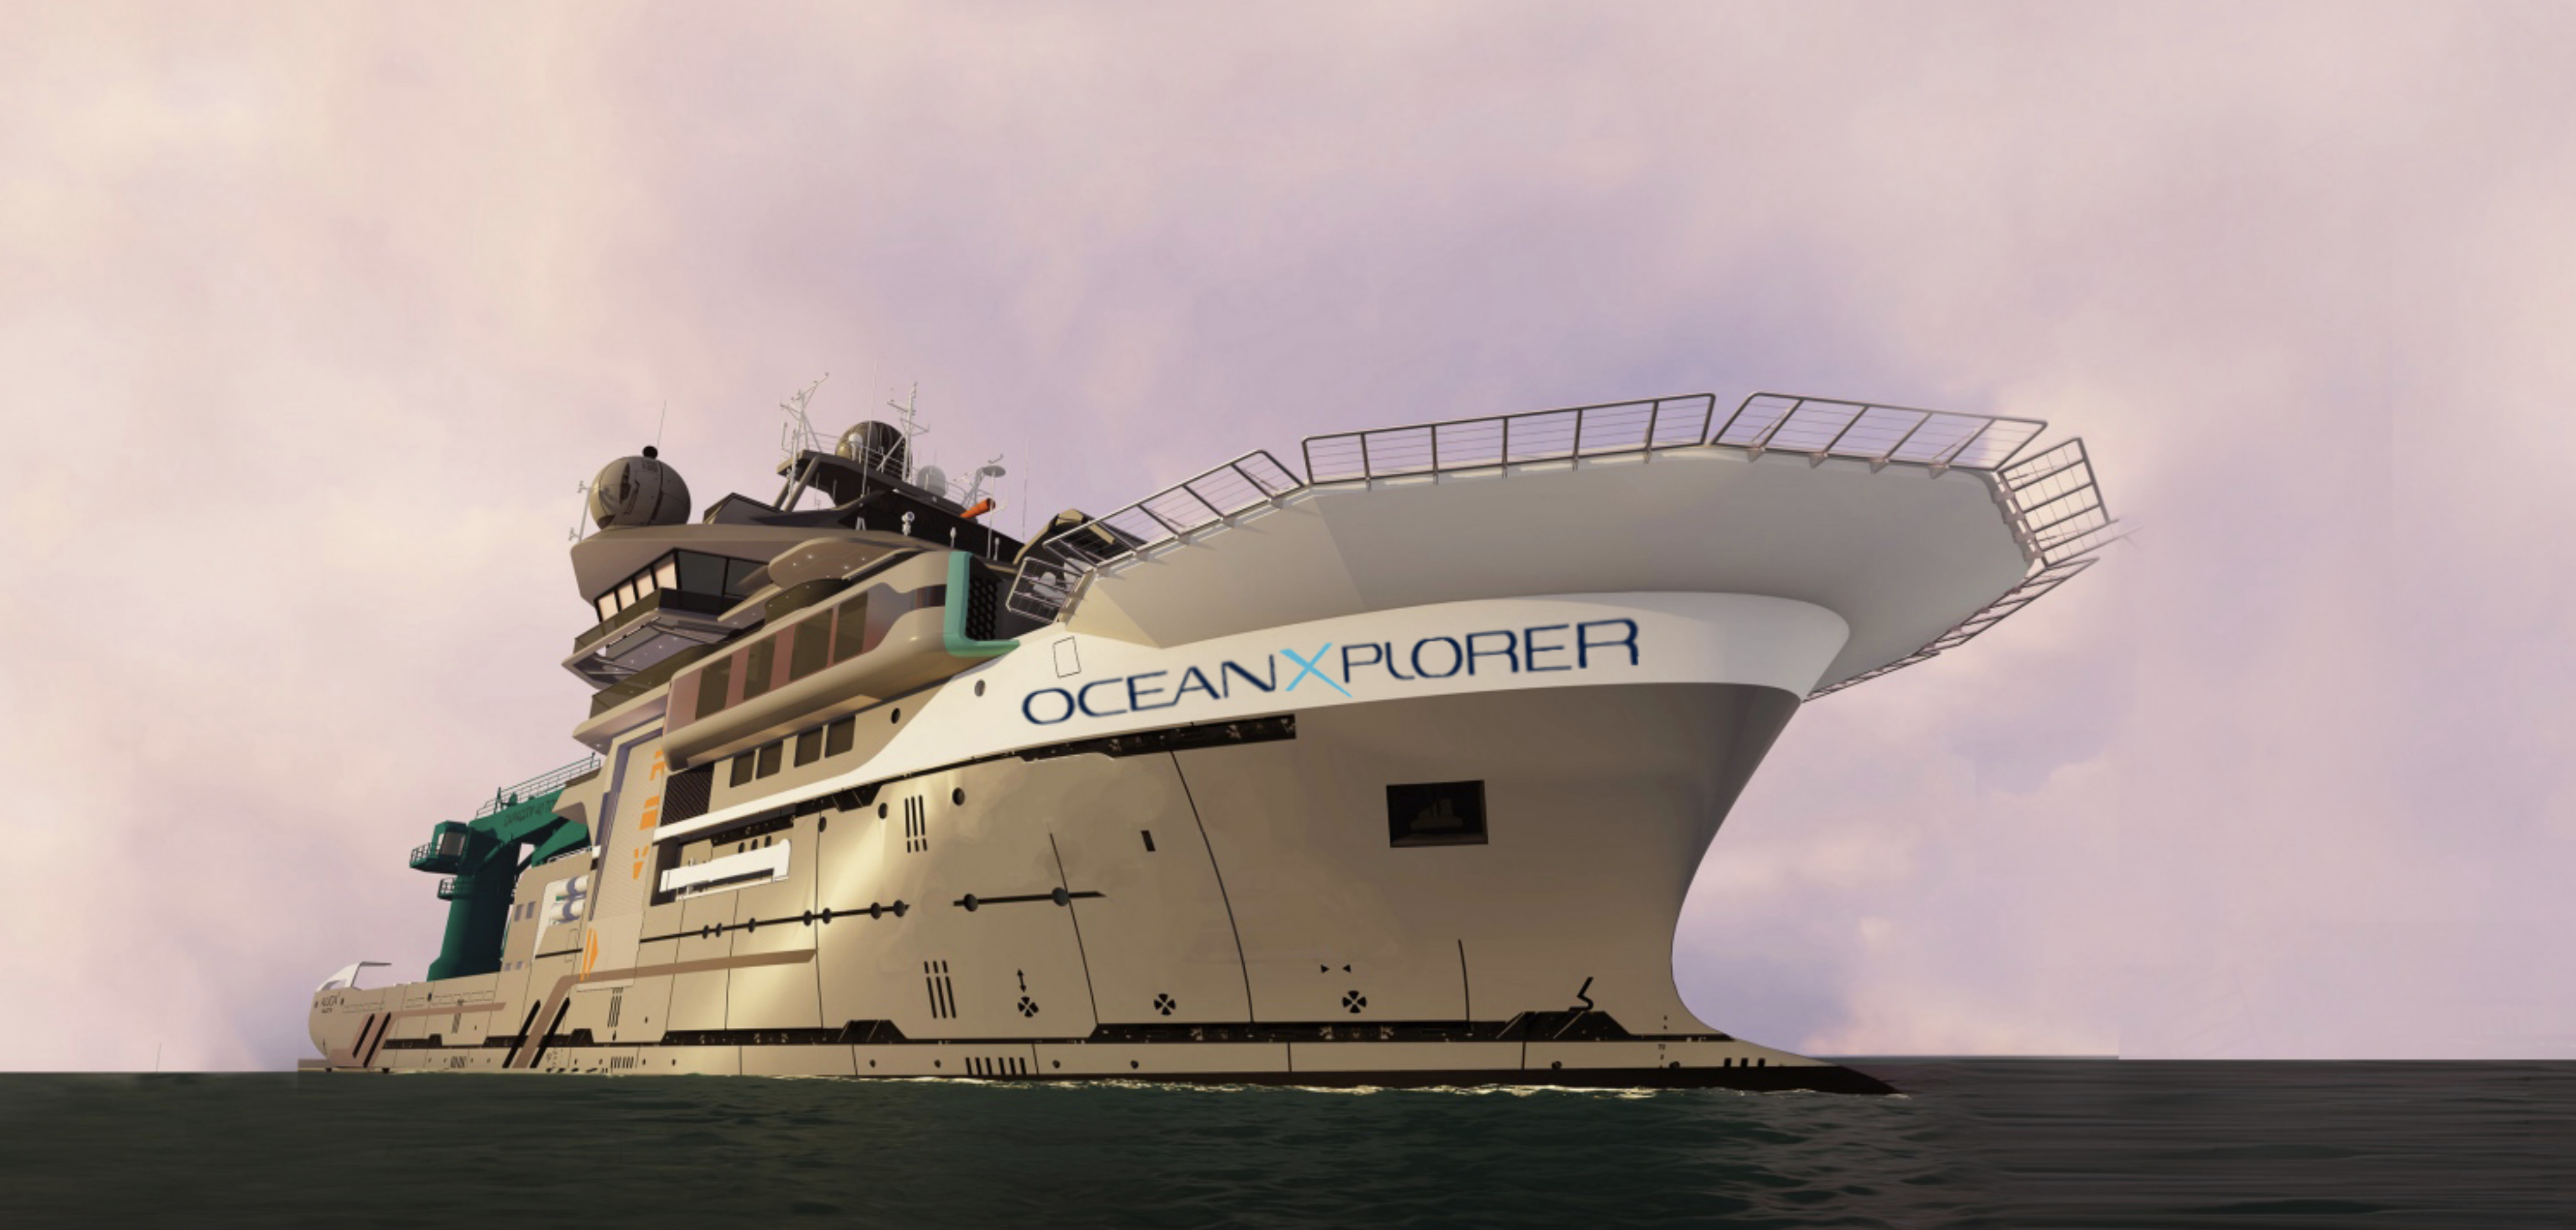 OceanXplorer : A superyacht built to research | Superyacht